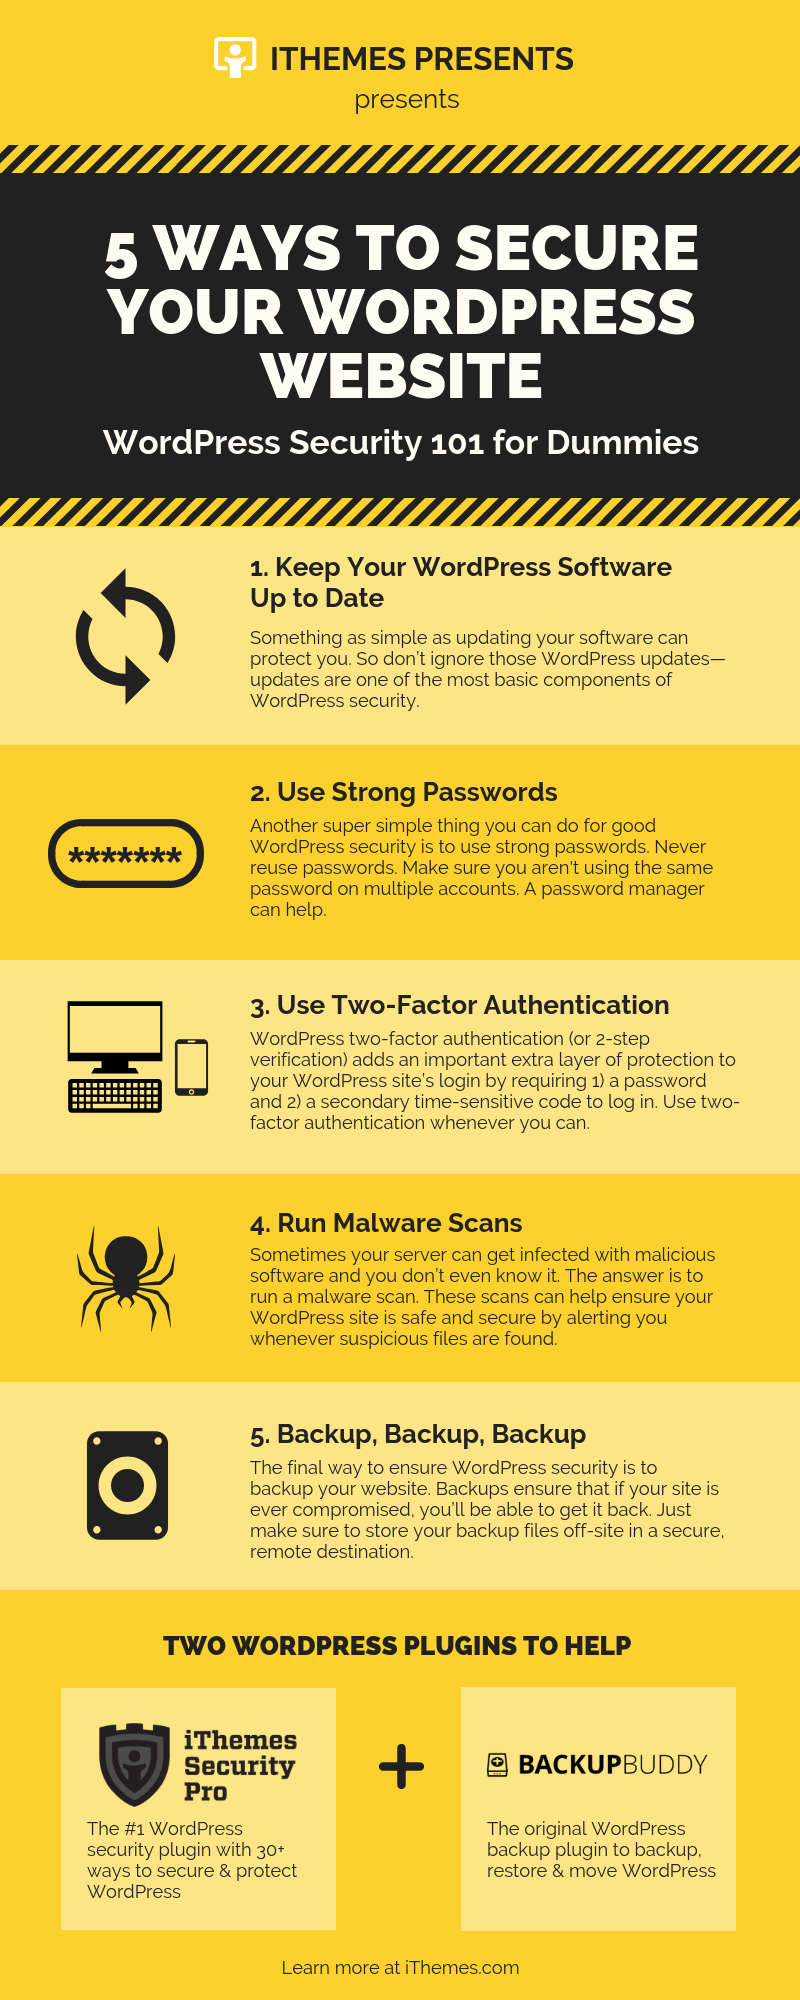 5 effective ways to secure your website from hackers - image